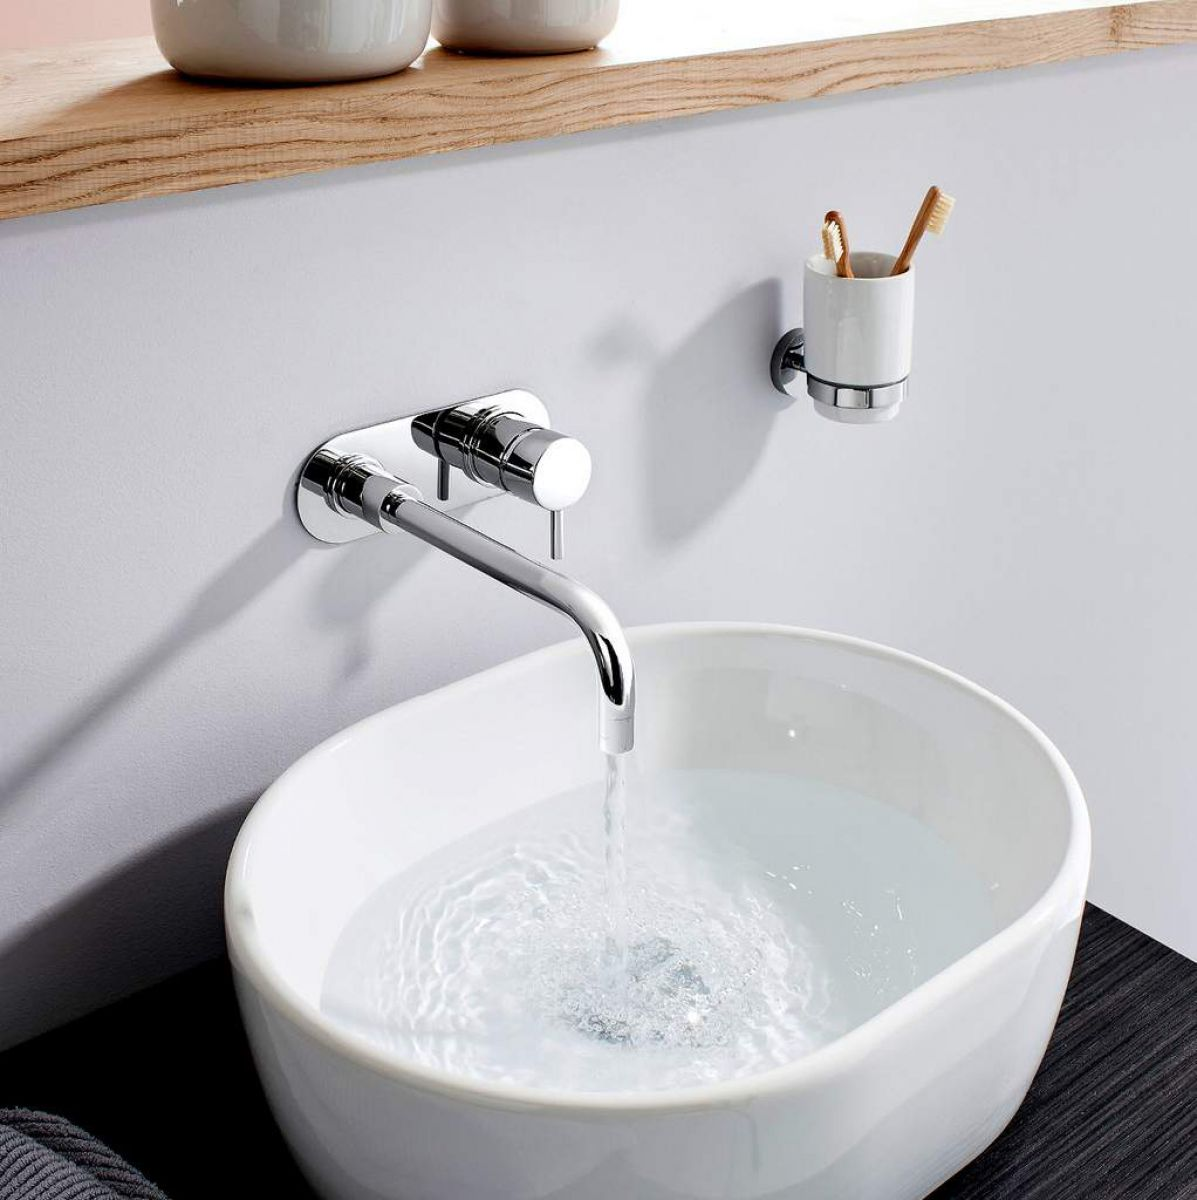 Crosswater Central Wall Mounted Basin Mixer Tap Uk Bathrooms